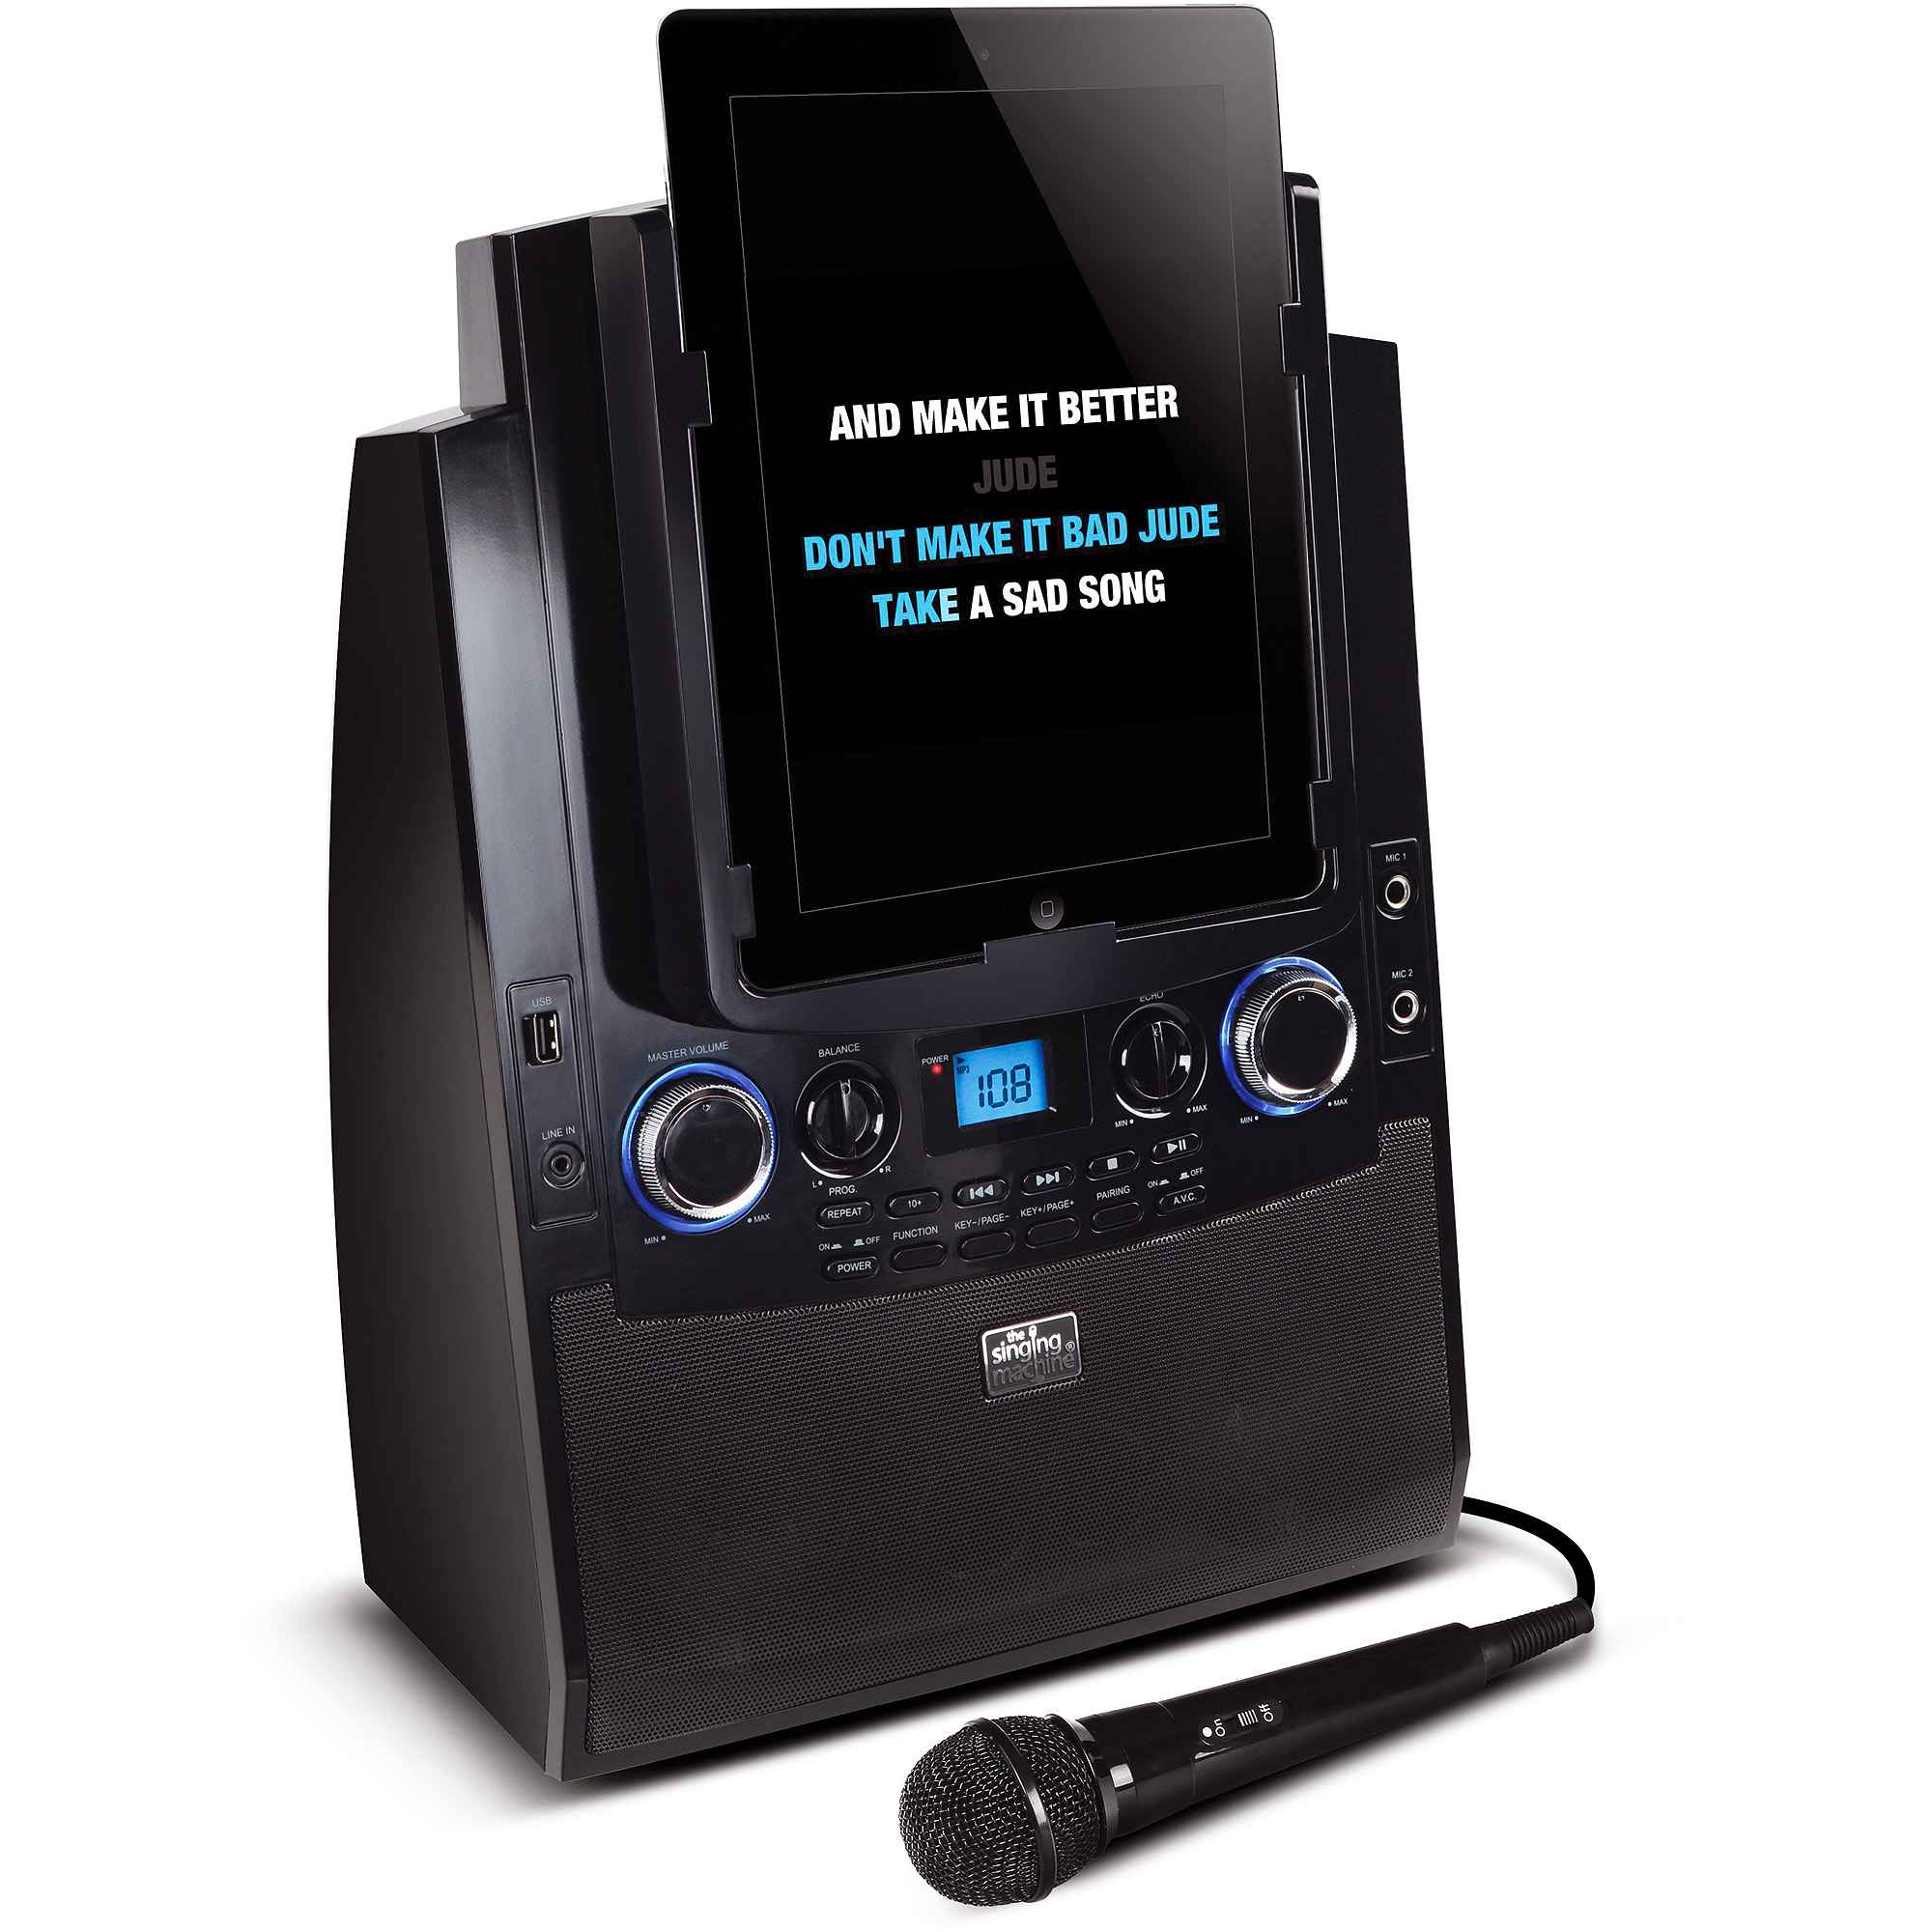 Singing Machine Bluetooth Mobile Karaoke System with Resting Tablet Cradle, Microphone, and Free Karaoke App